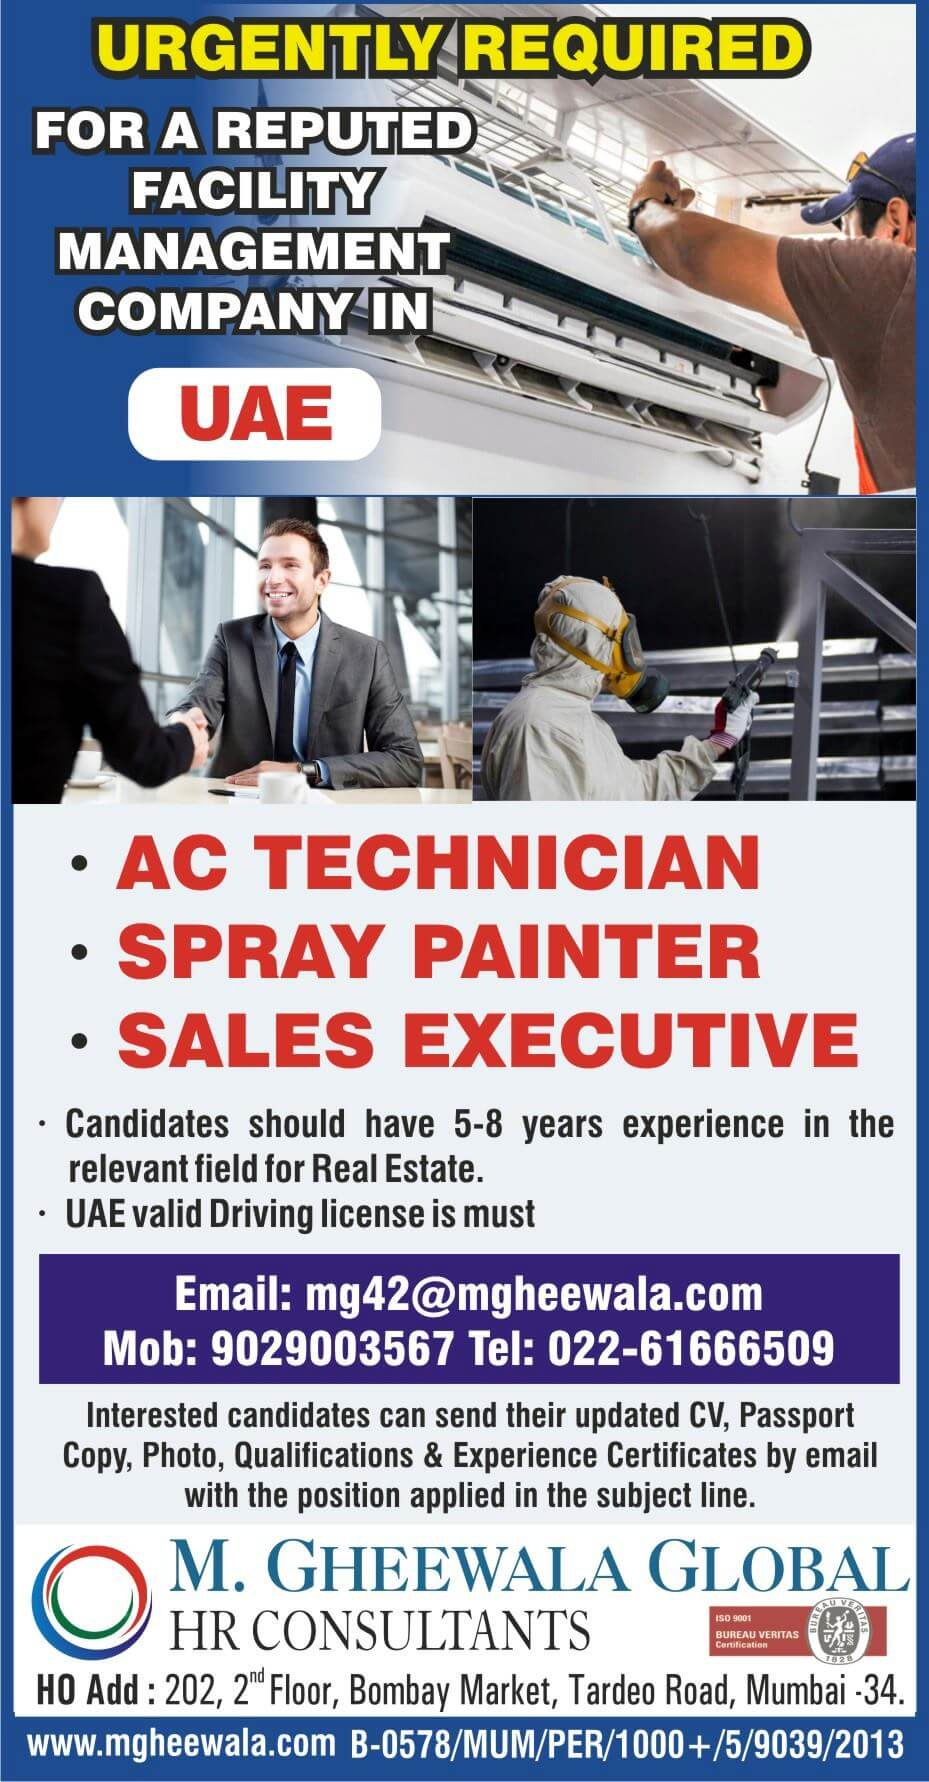 Jobs for uae